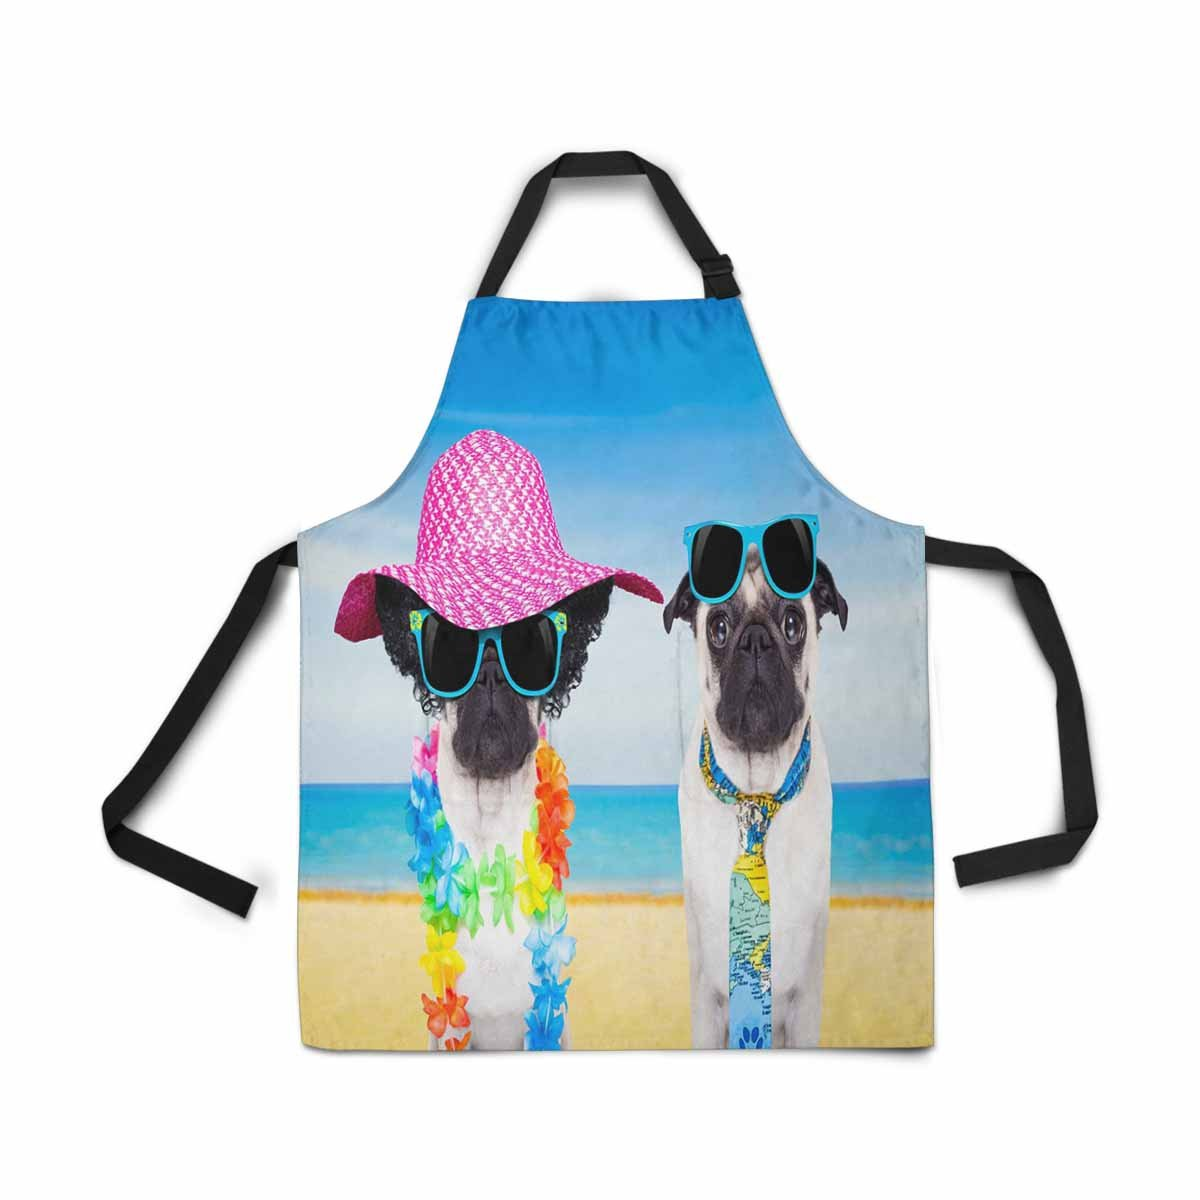 InterestPrint Adjustable Bib Apron for Women Men Girls Chef with Pockets, Summer Seashells Collage Novelty Kitchen Apron for Cooking Baking Gardening Pet Grooming Cleaning